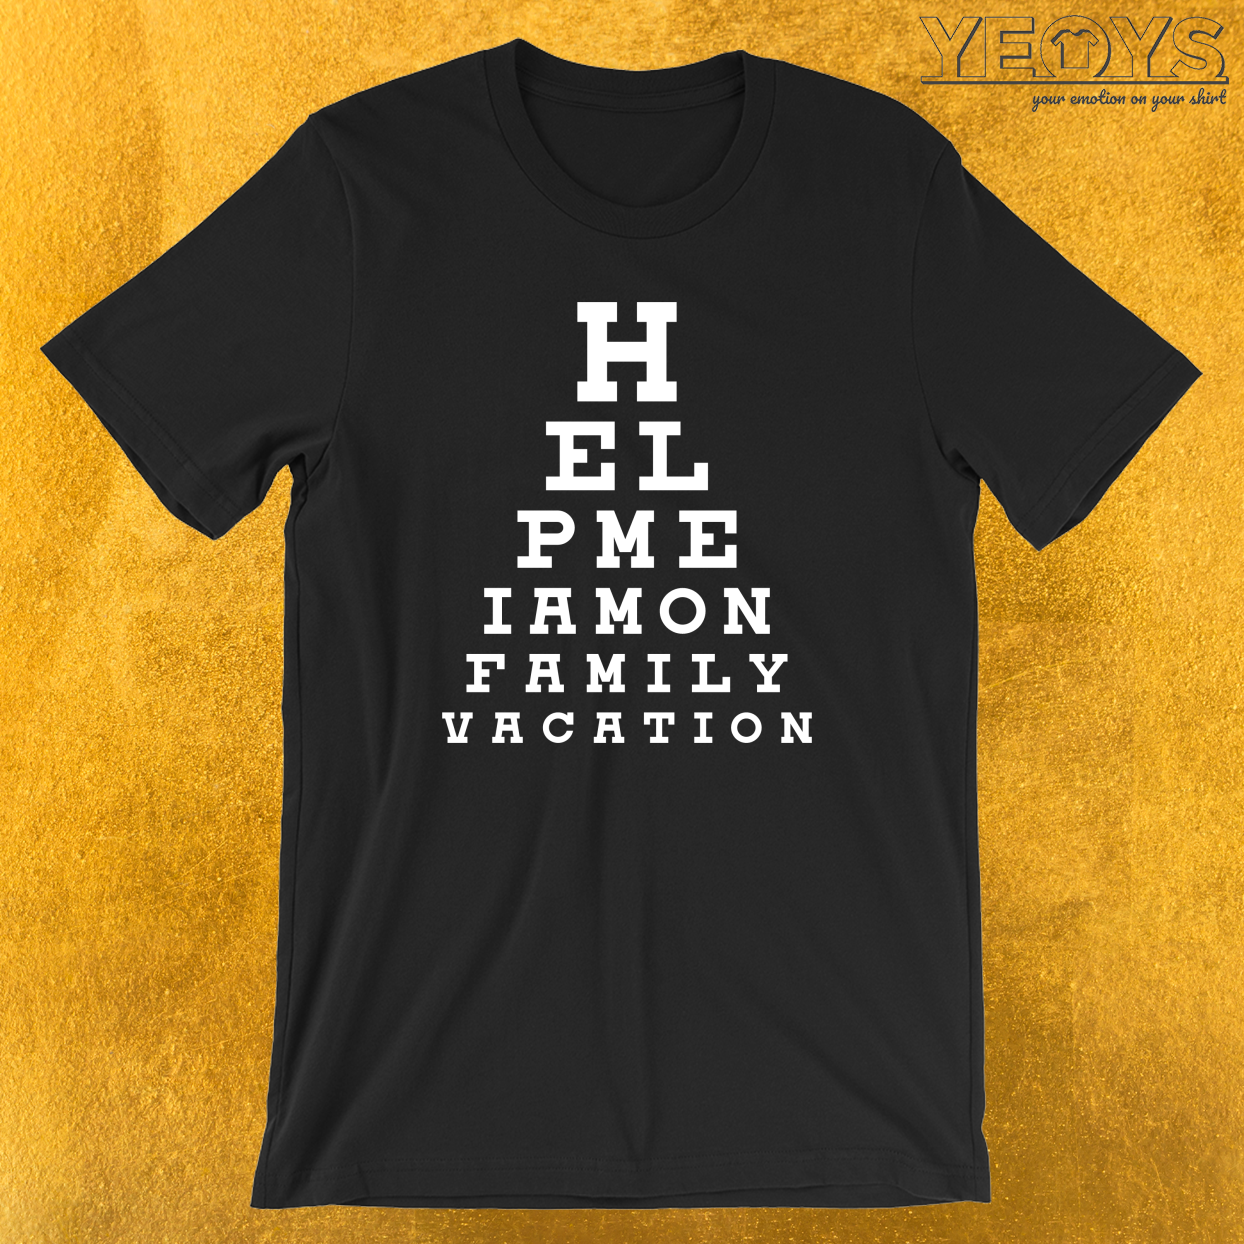 Help Me I Am On Family Vacation T-Shirt